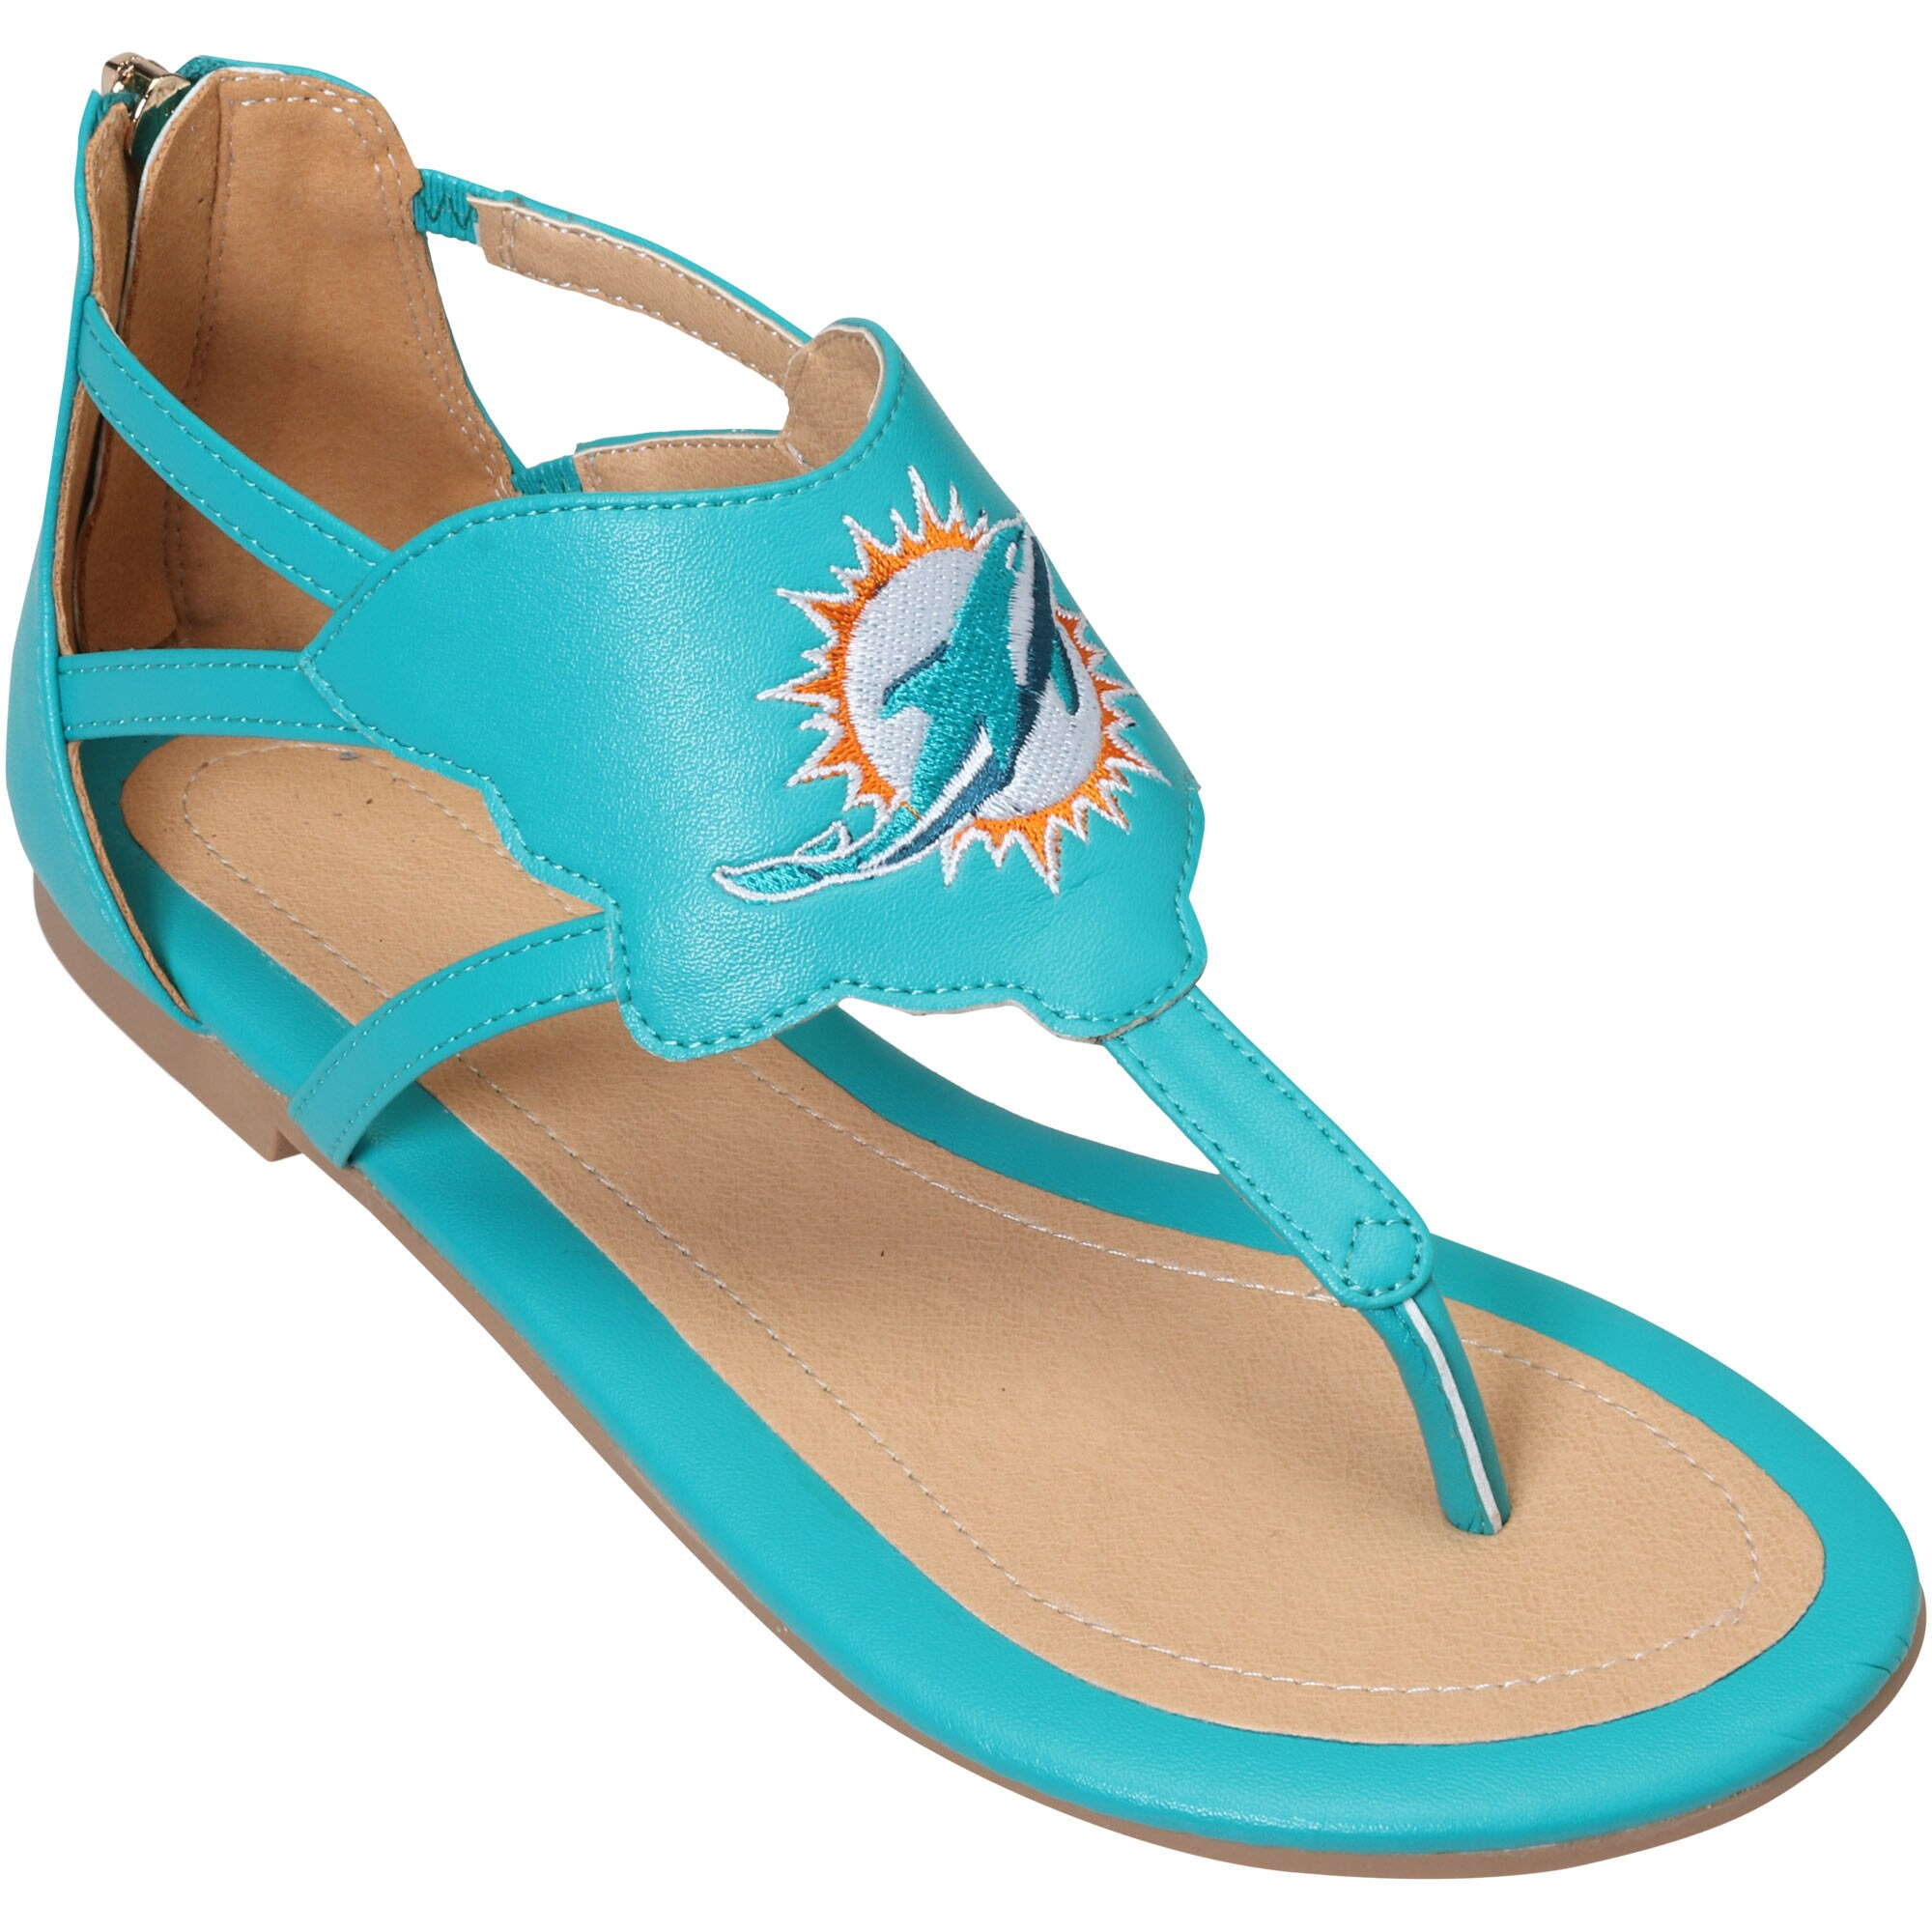 Miami Dolphins Cuce Women's Gladiator Sandals - Aqua